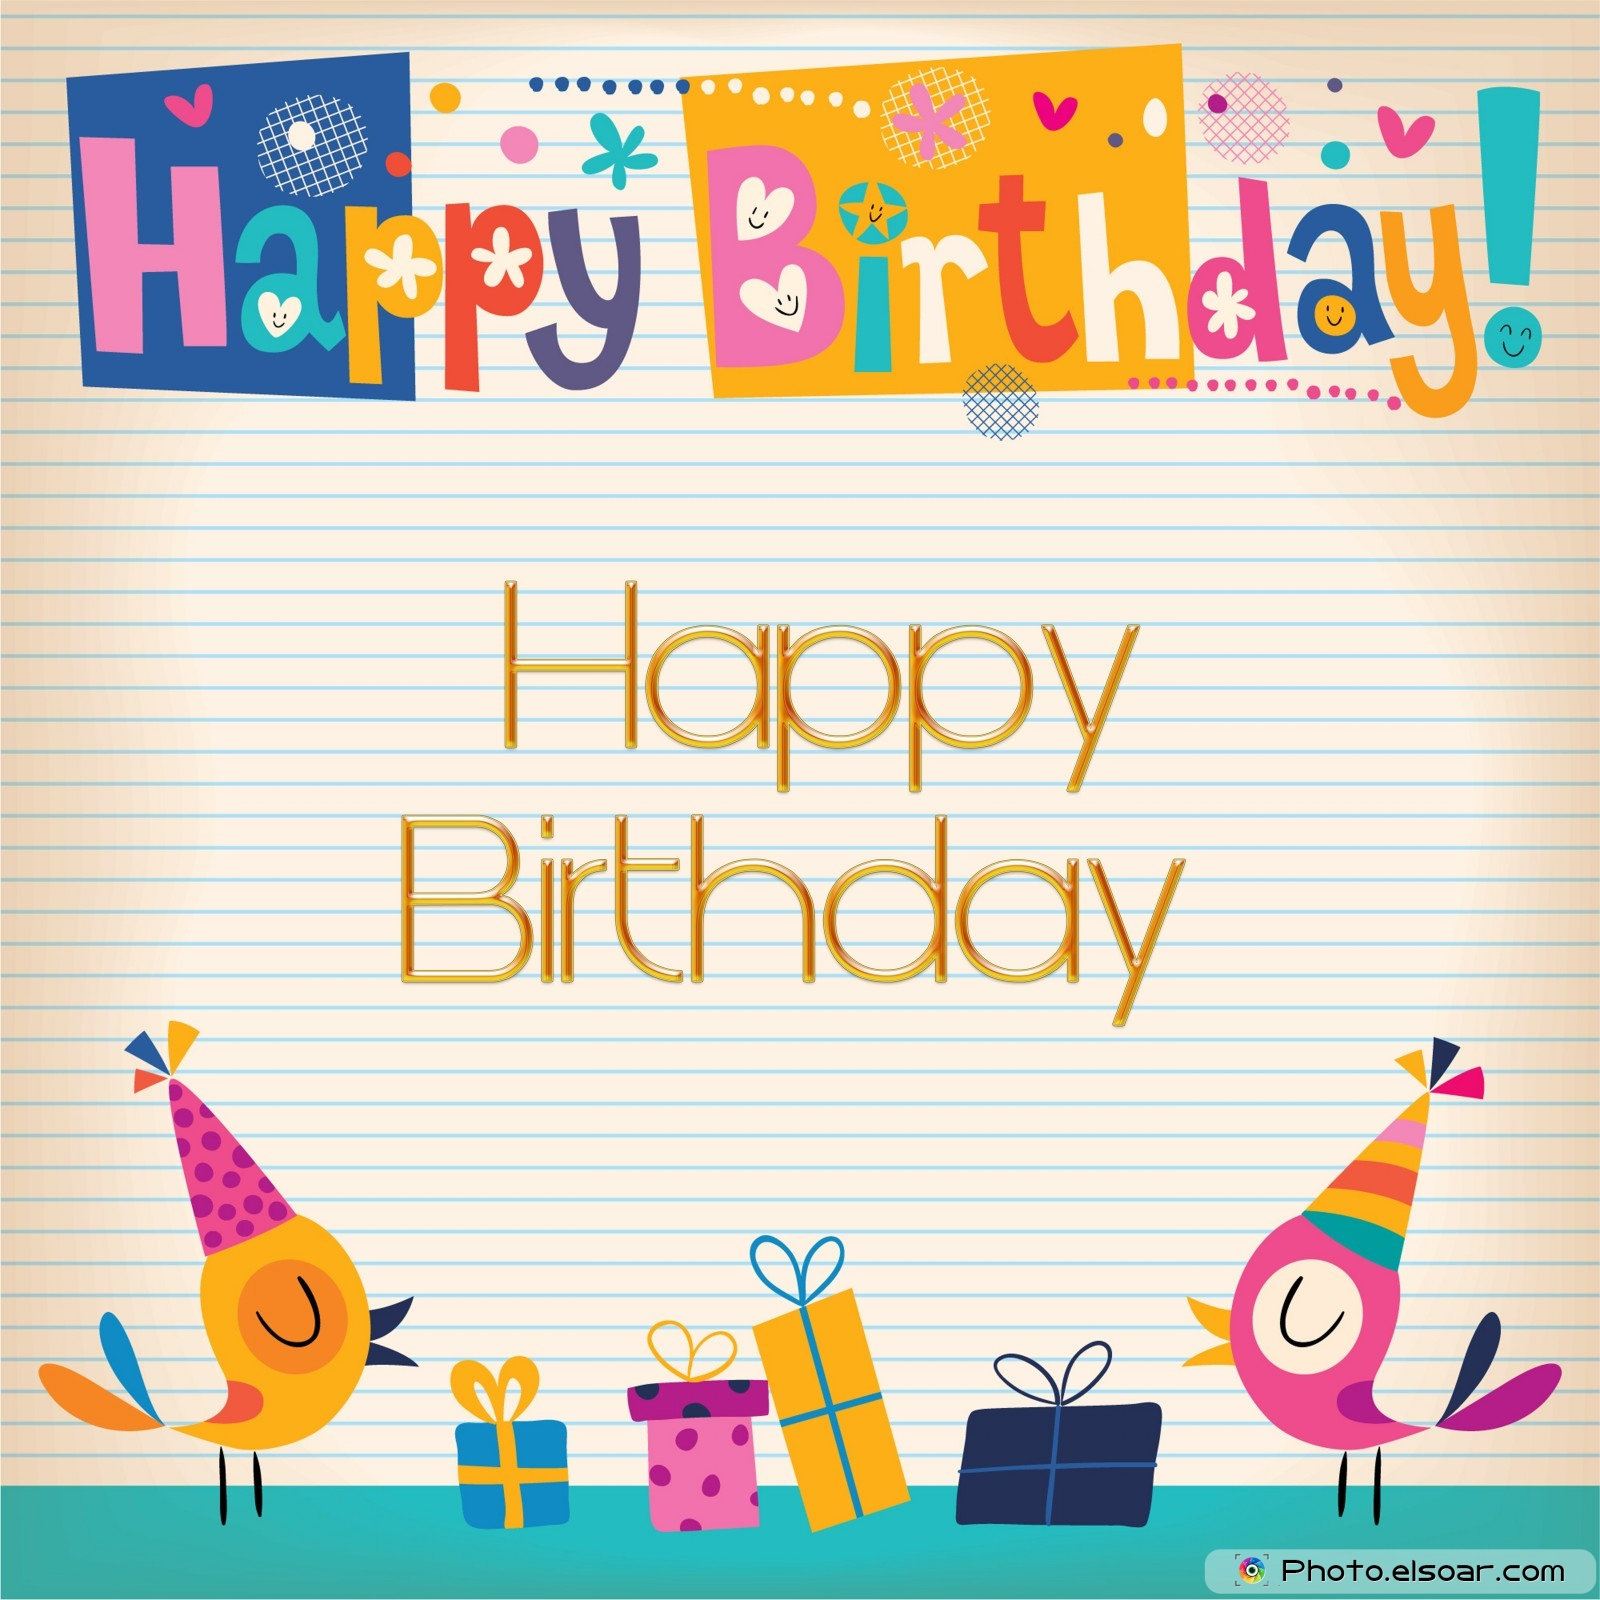 22 Happy BirthDay Cards on Bright Backgrounds Elsoar – Pretty Birthday Cards